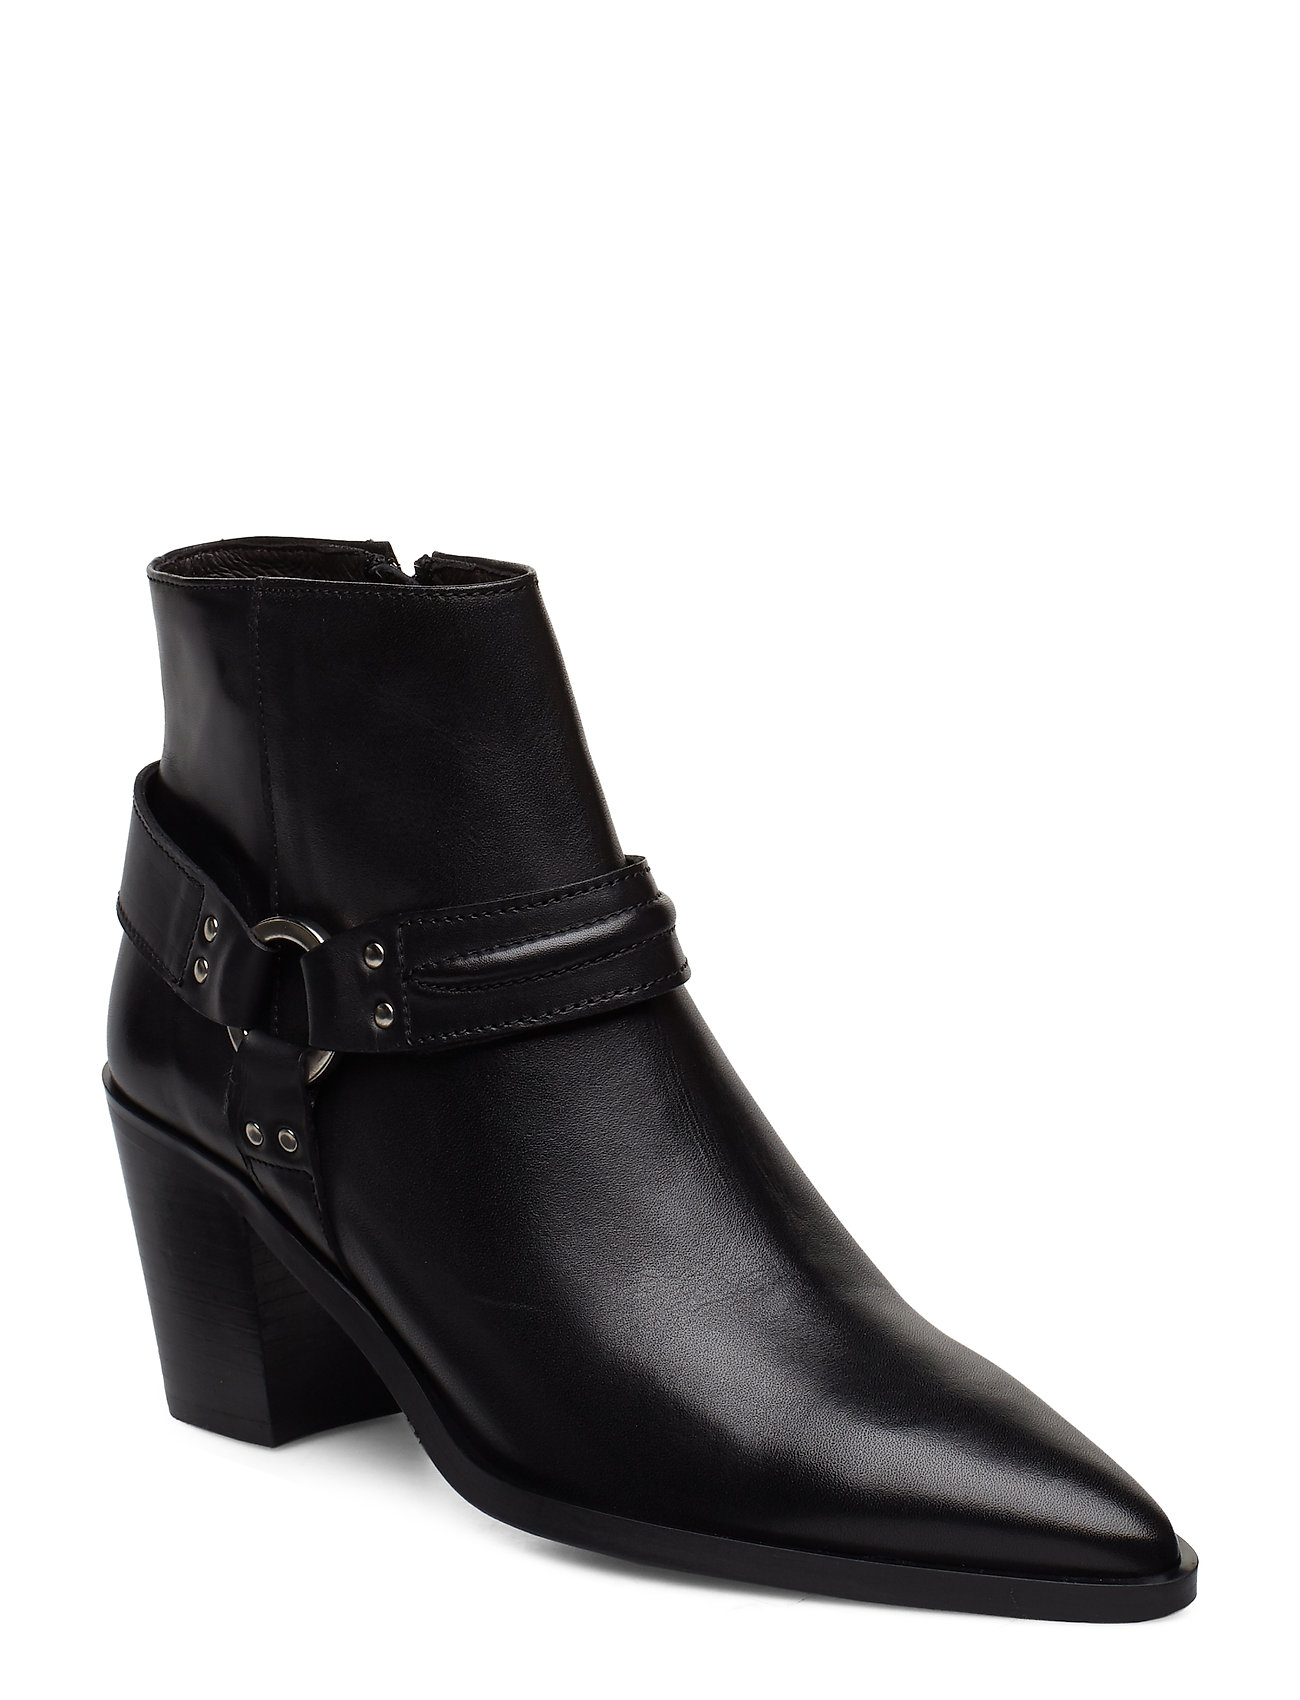 Image of Booties 3722 Shoes Boots Ankle Boots Ankle Boot - Heel Sort Billi Bi (3406199931)